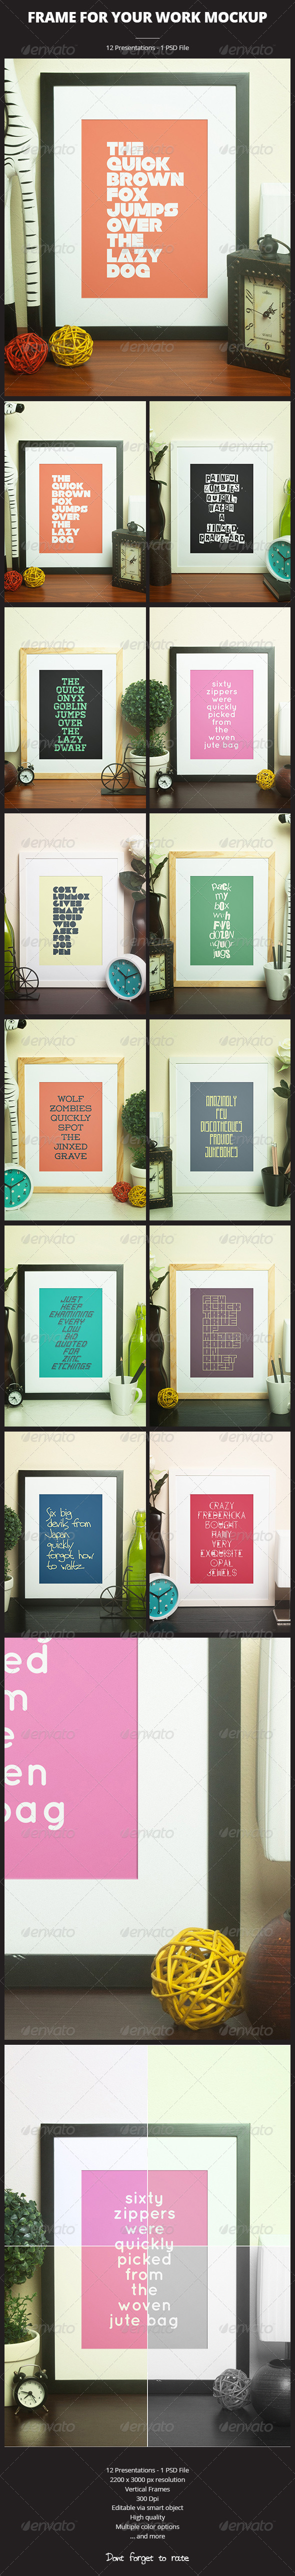 Frame For Your Work - Print Product Mock-Ups